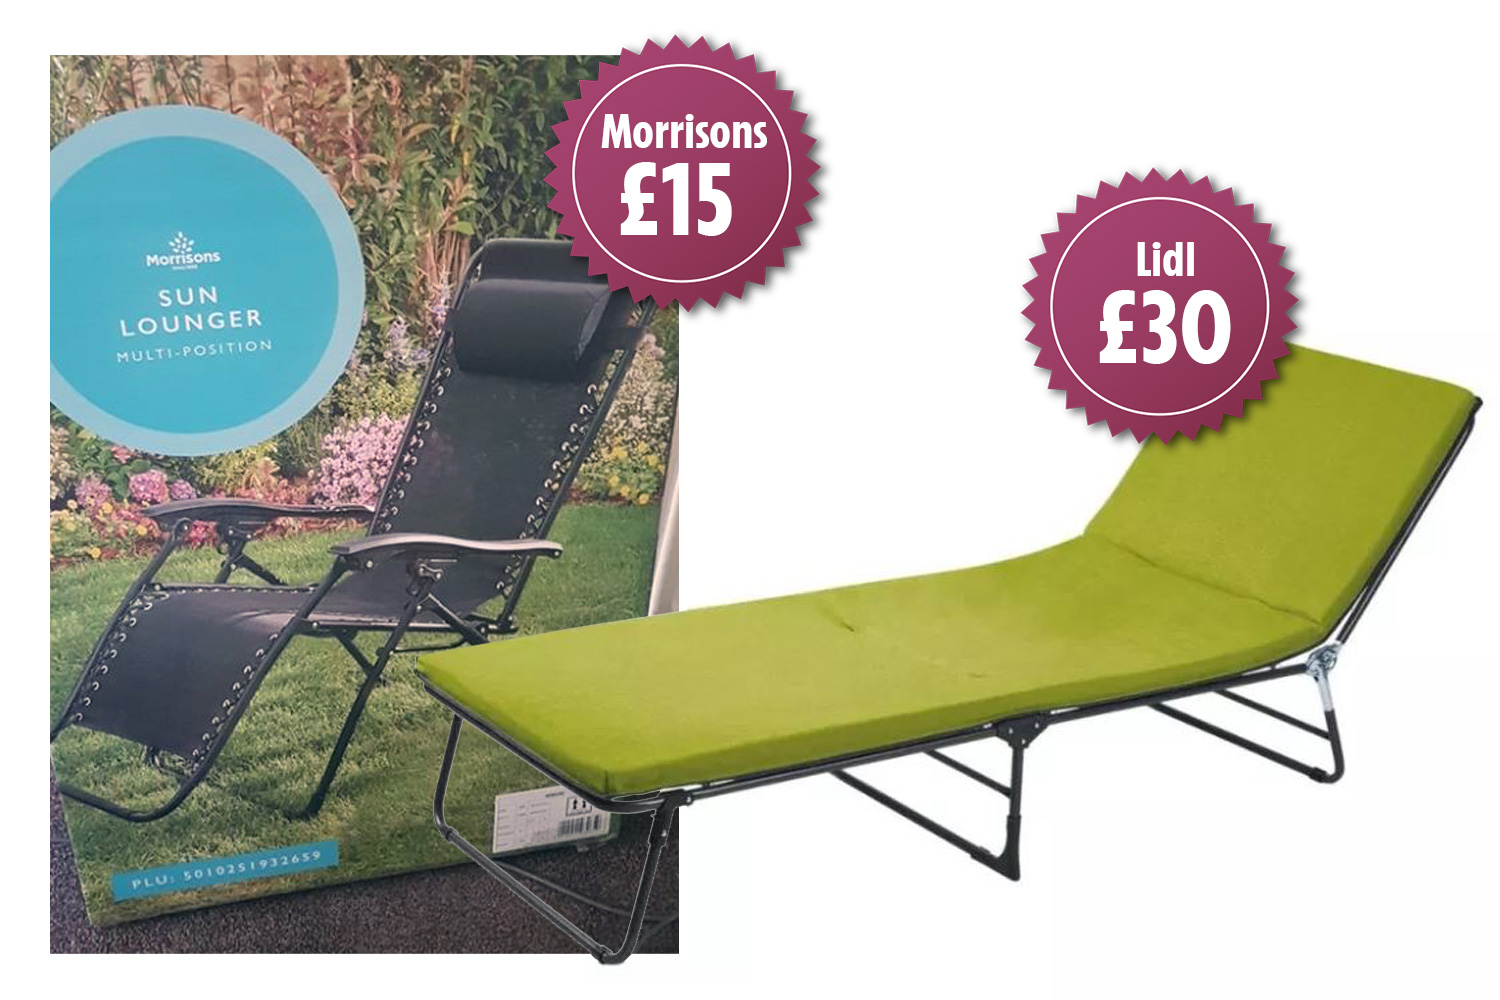 Morrisons Is Selling A Sun Lounger For 15 And It S Half The Price Of Lidl S